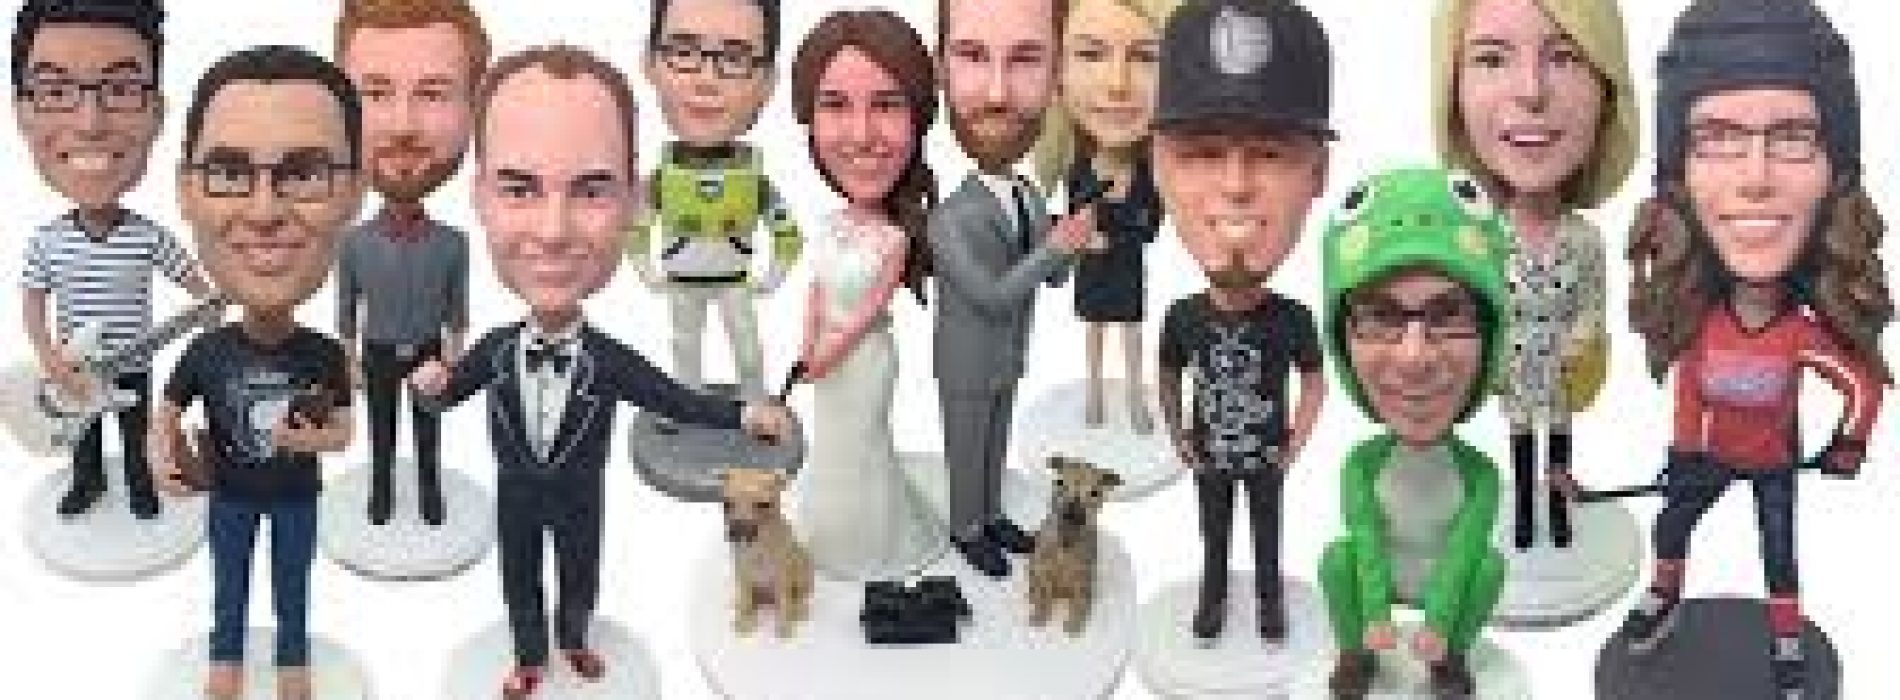 Get your own customized Bobbleheads to make your bedroom look cool